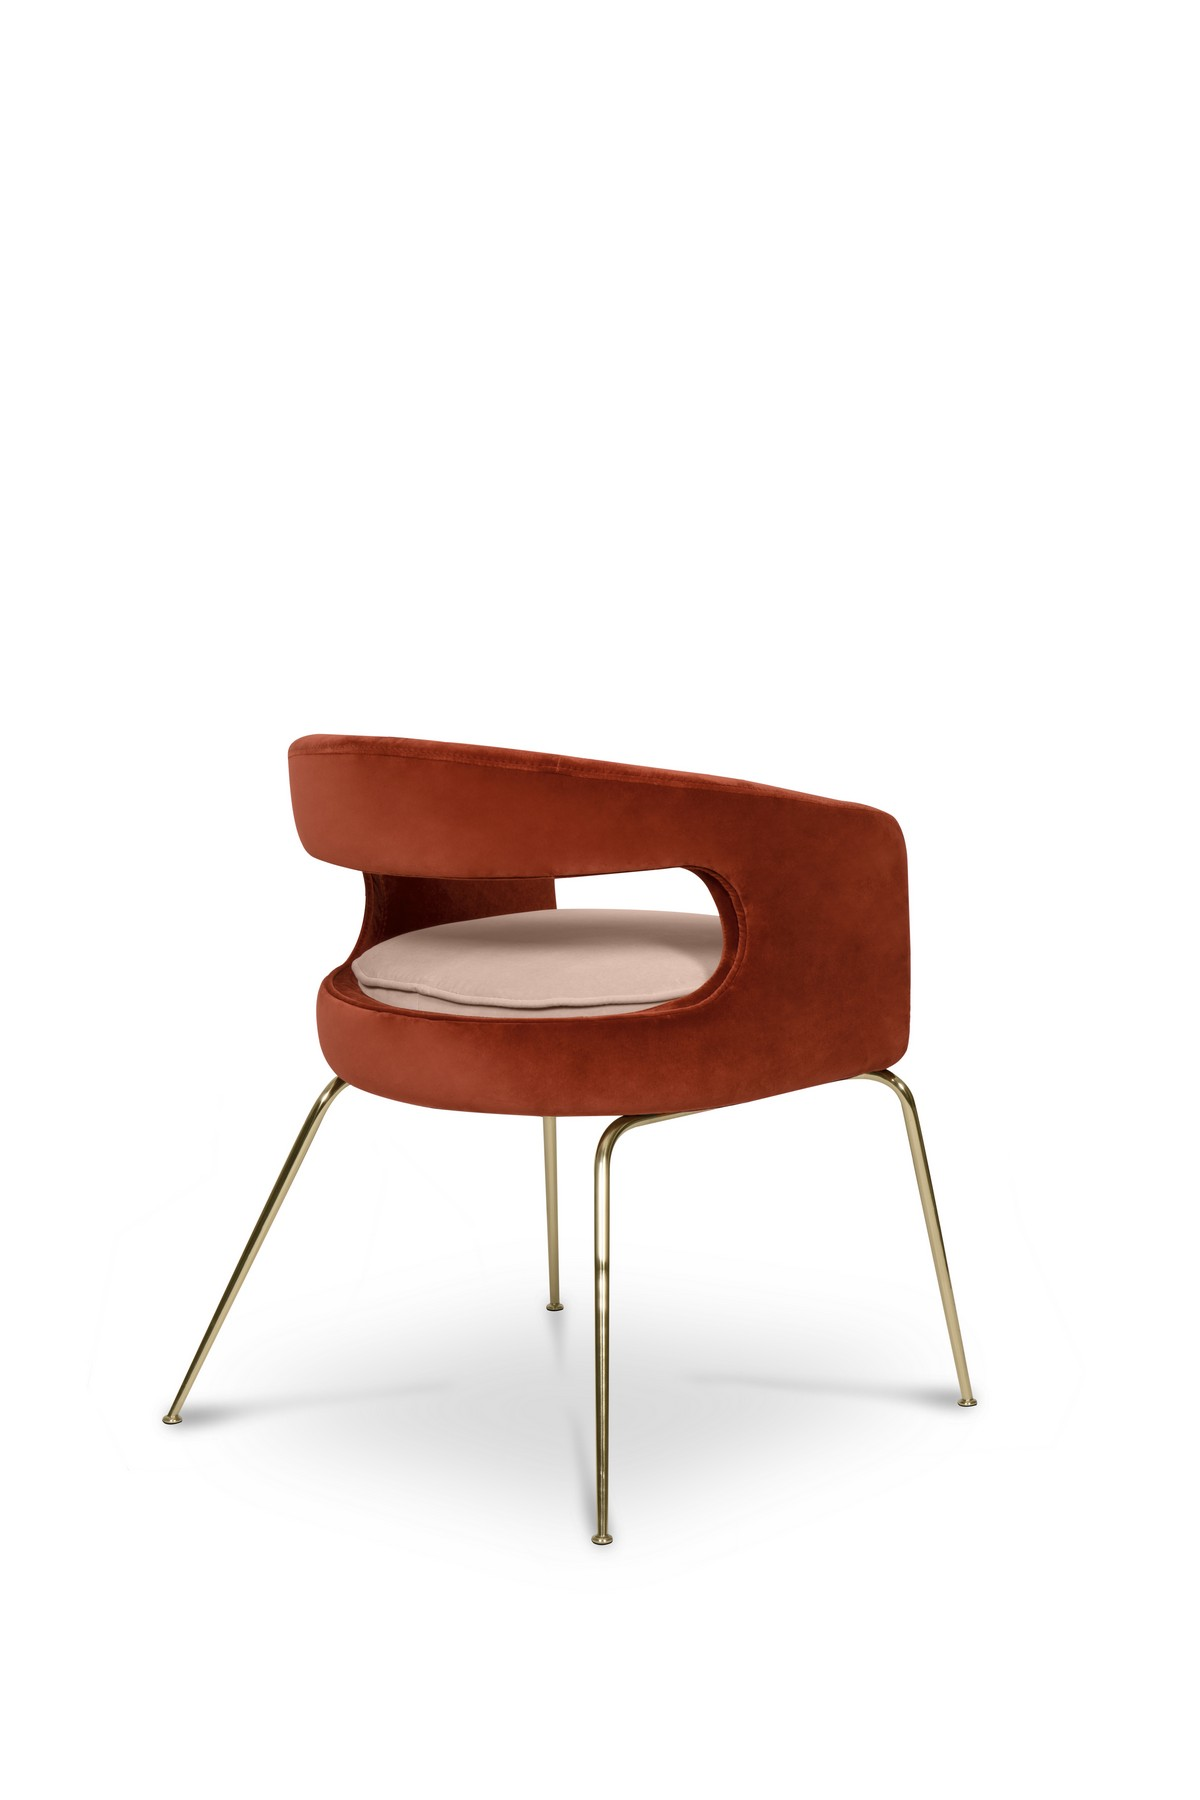 Top 5 Exquisite Dining Chairs by Essential Home | It can be on the sleek lines of a futuristic chair, retro ads that defined a generation, classic and iconic movie stars and heartbreakers from the 60's, you name it. #diningchairs #diningroom #diningtable #interiordesign #homedecor  Top 5 Exquisite Dining Chairs by Essential Home ellen dining chair 04 HR